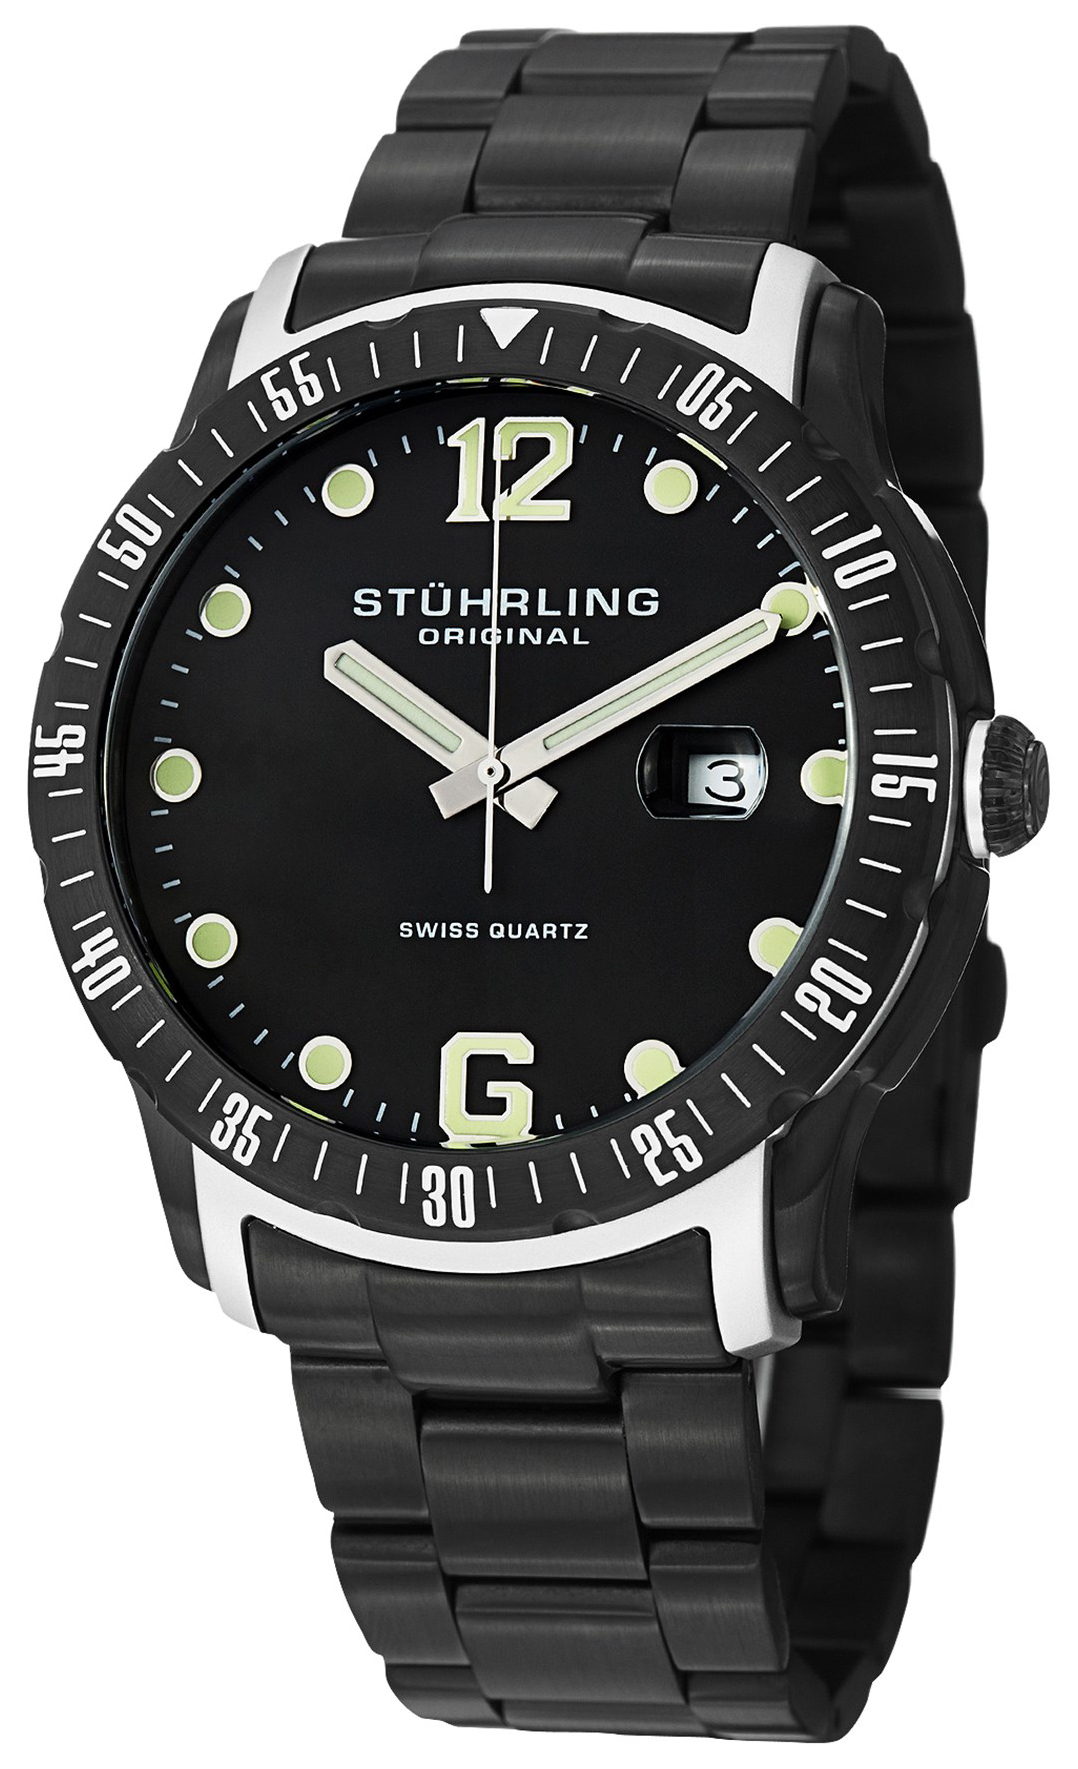 Stührling Original Aquadiver Herrklocka 421.335B1 Svart/Stål Ø45 mm - Stührling Original